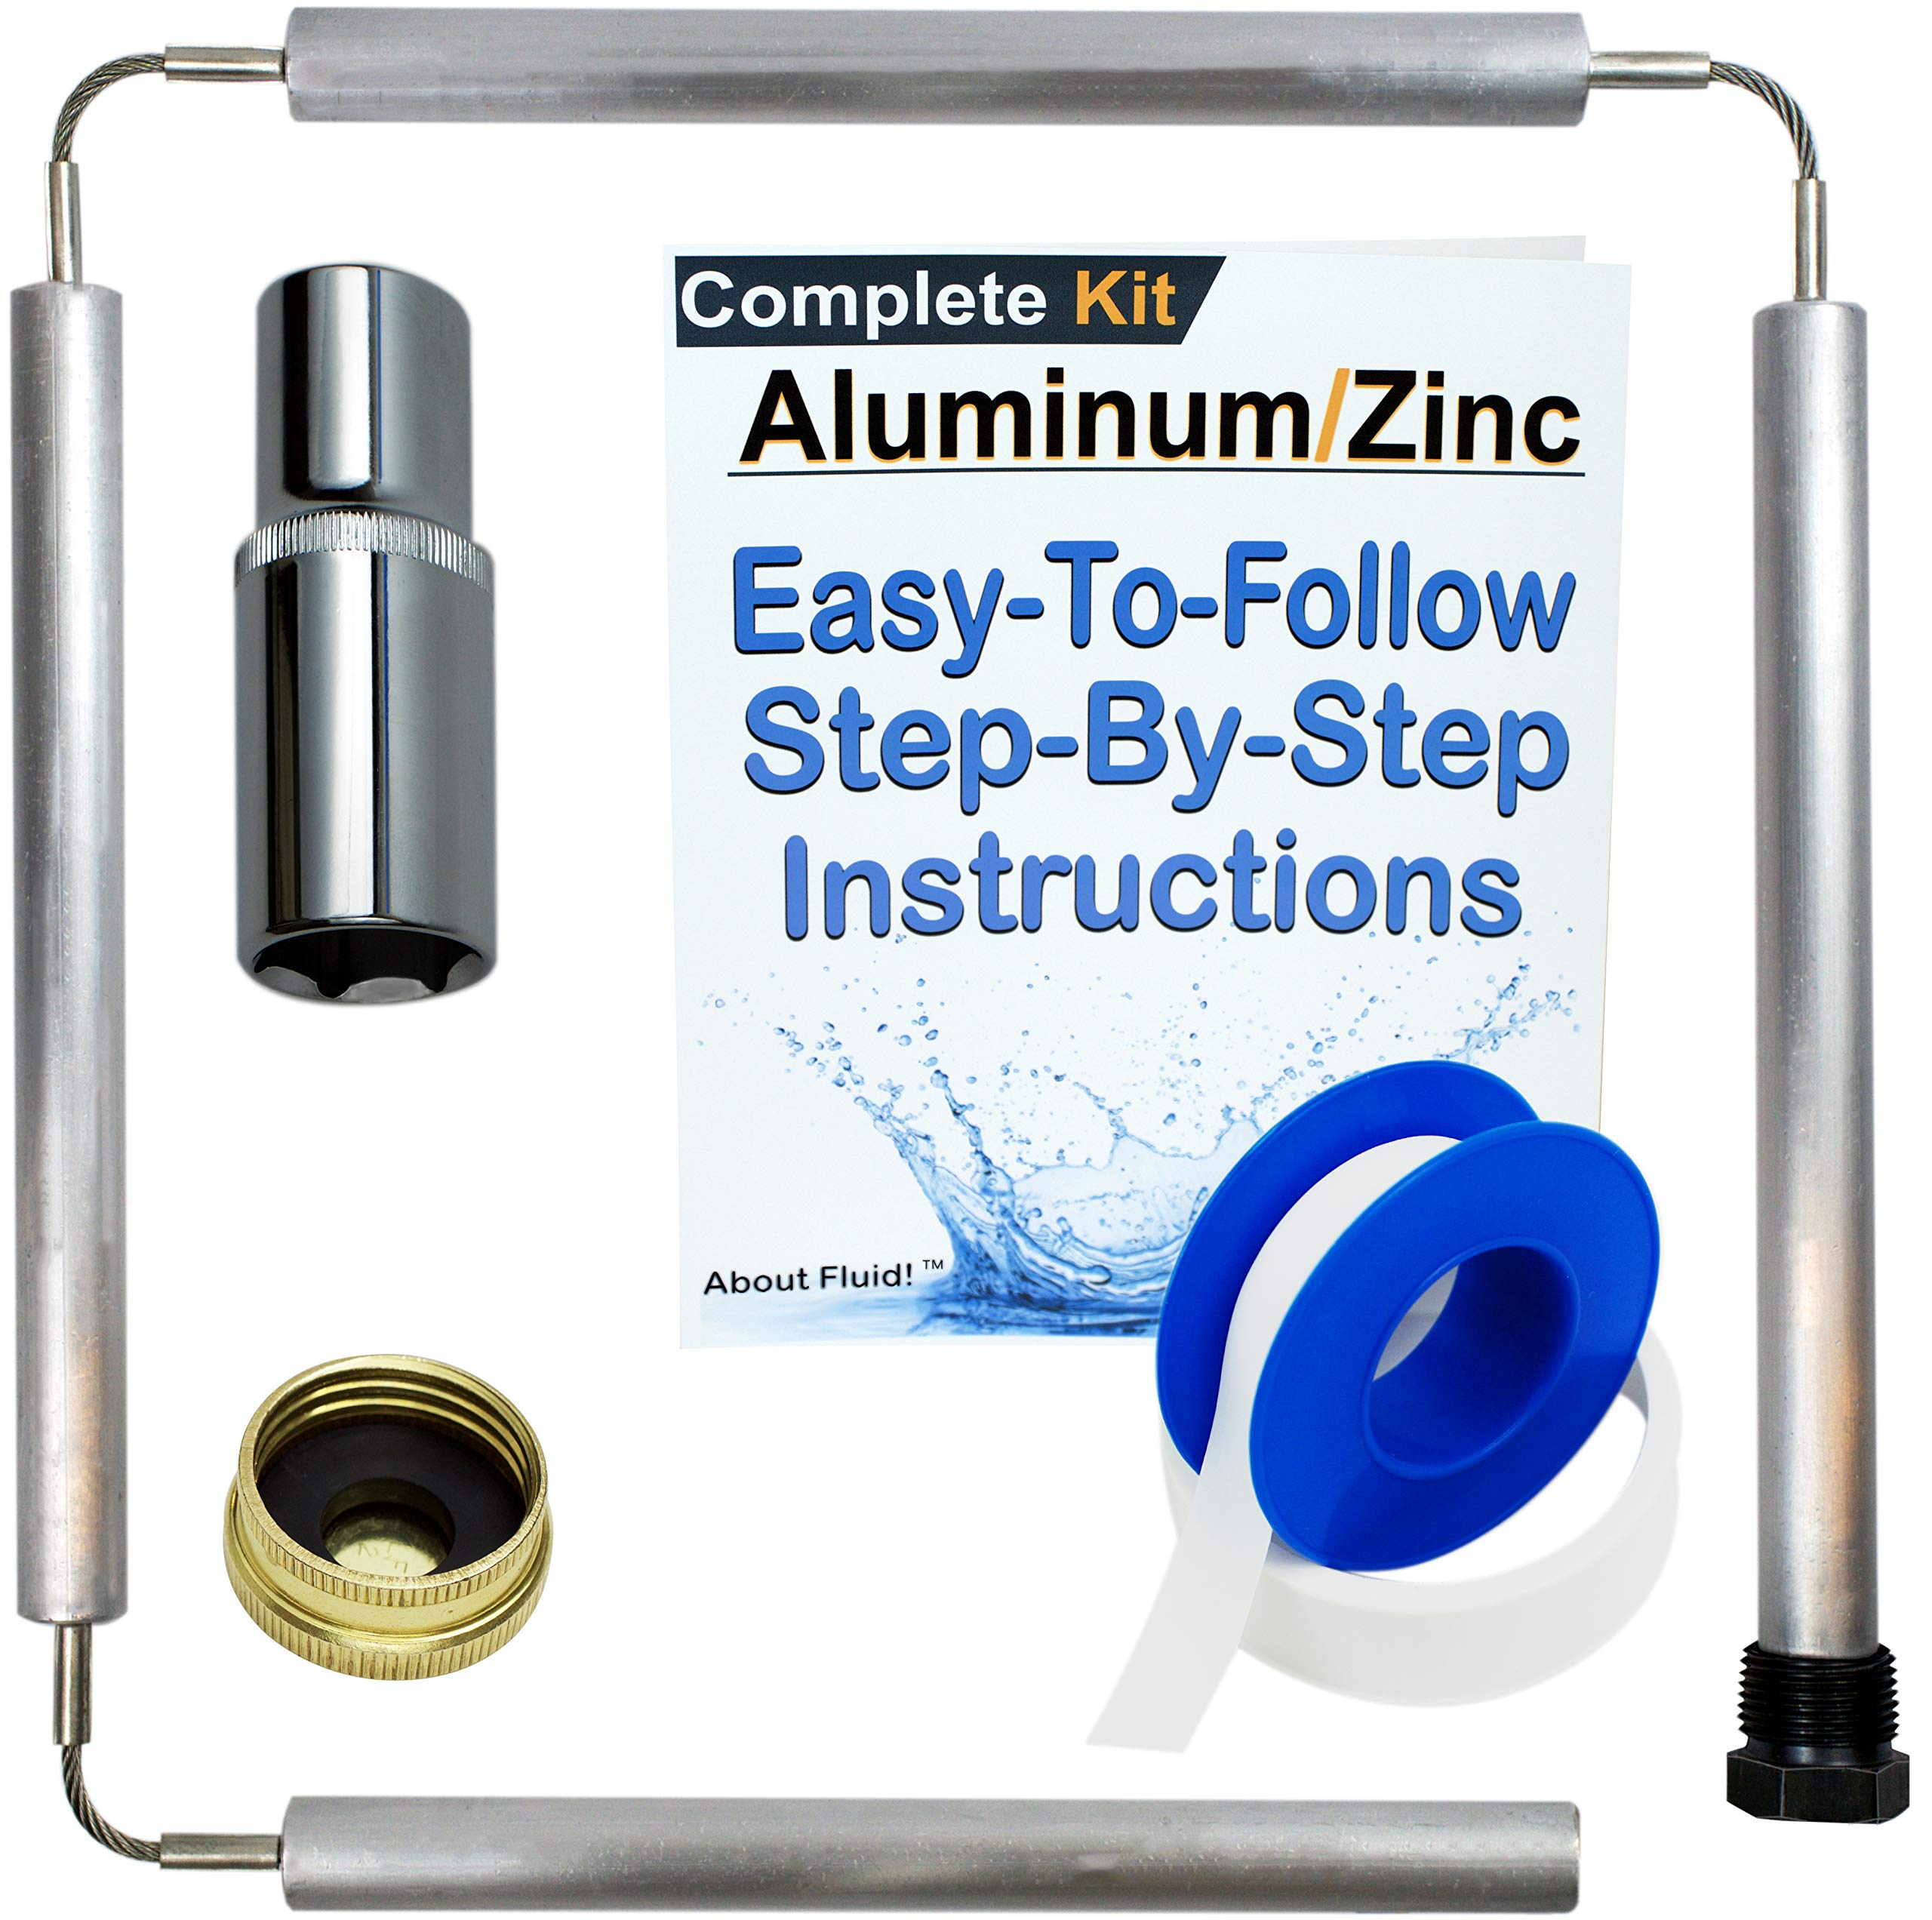 About Fluid Aluminum/Zinc Flexible Anode Rod Complete Kit For Water Heaters | 44'' Long | Get Rid Of Rotten Egg Smelling Hot Water! | Full-Roll Teflon Tape | 1-1/16'' Socket Included (Complete Kit) | by About Fluid